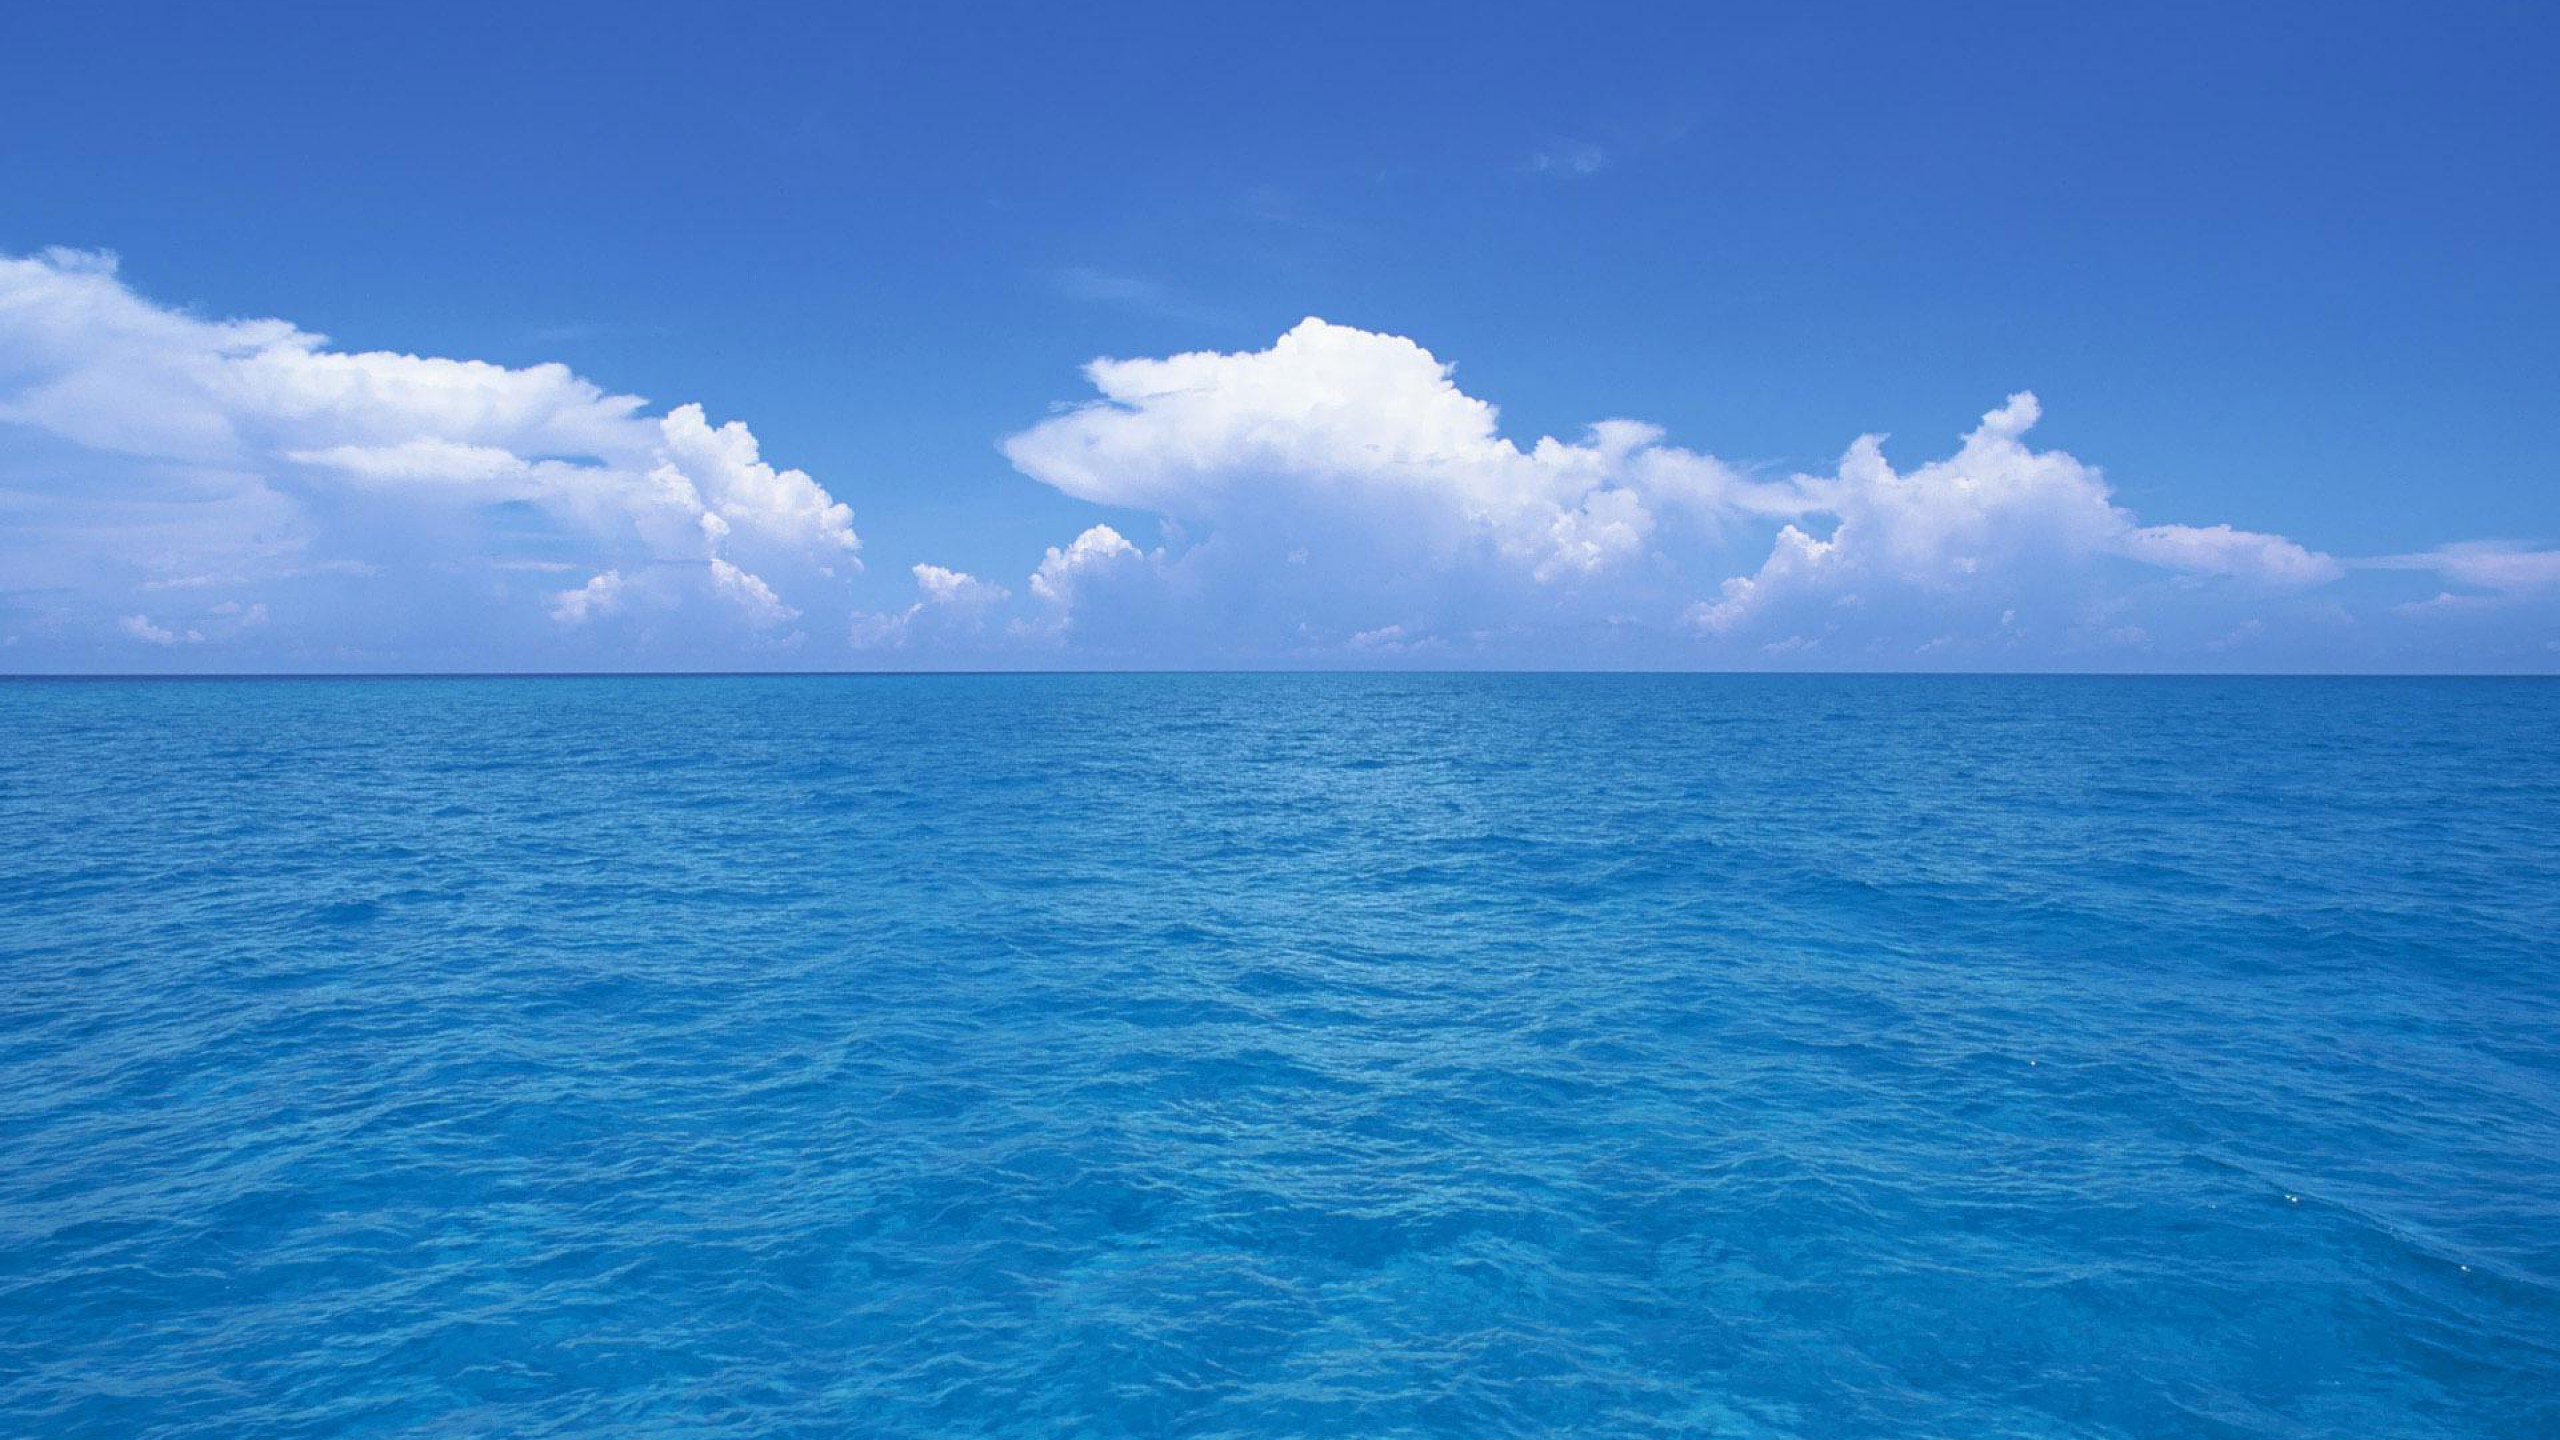 Ocean HD Wallpapers 2560x1440